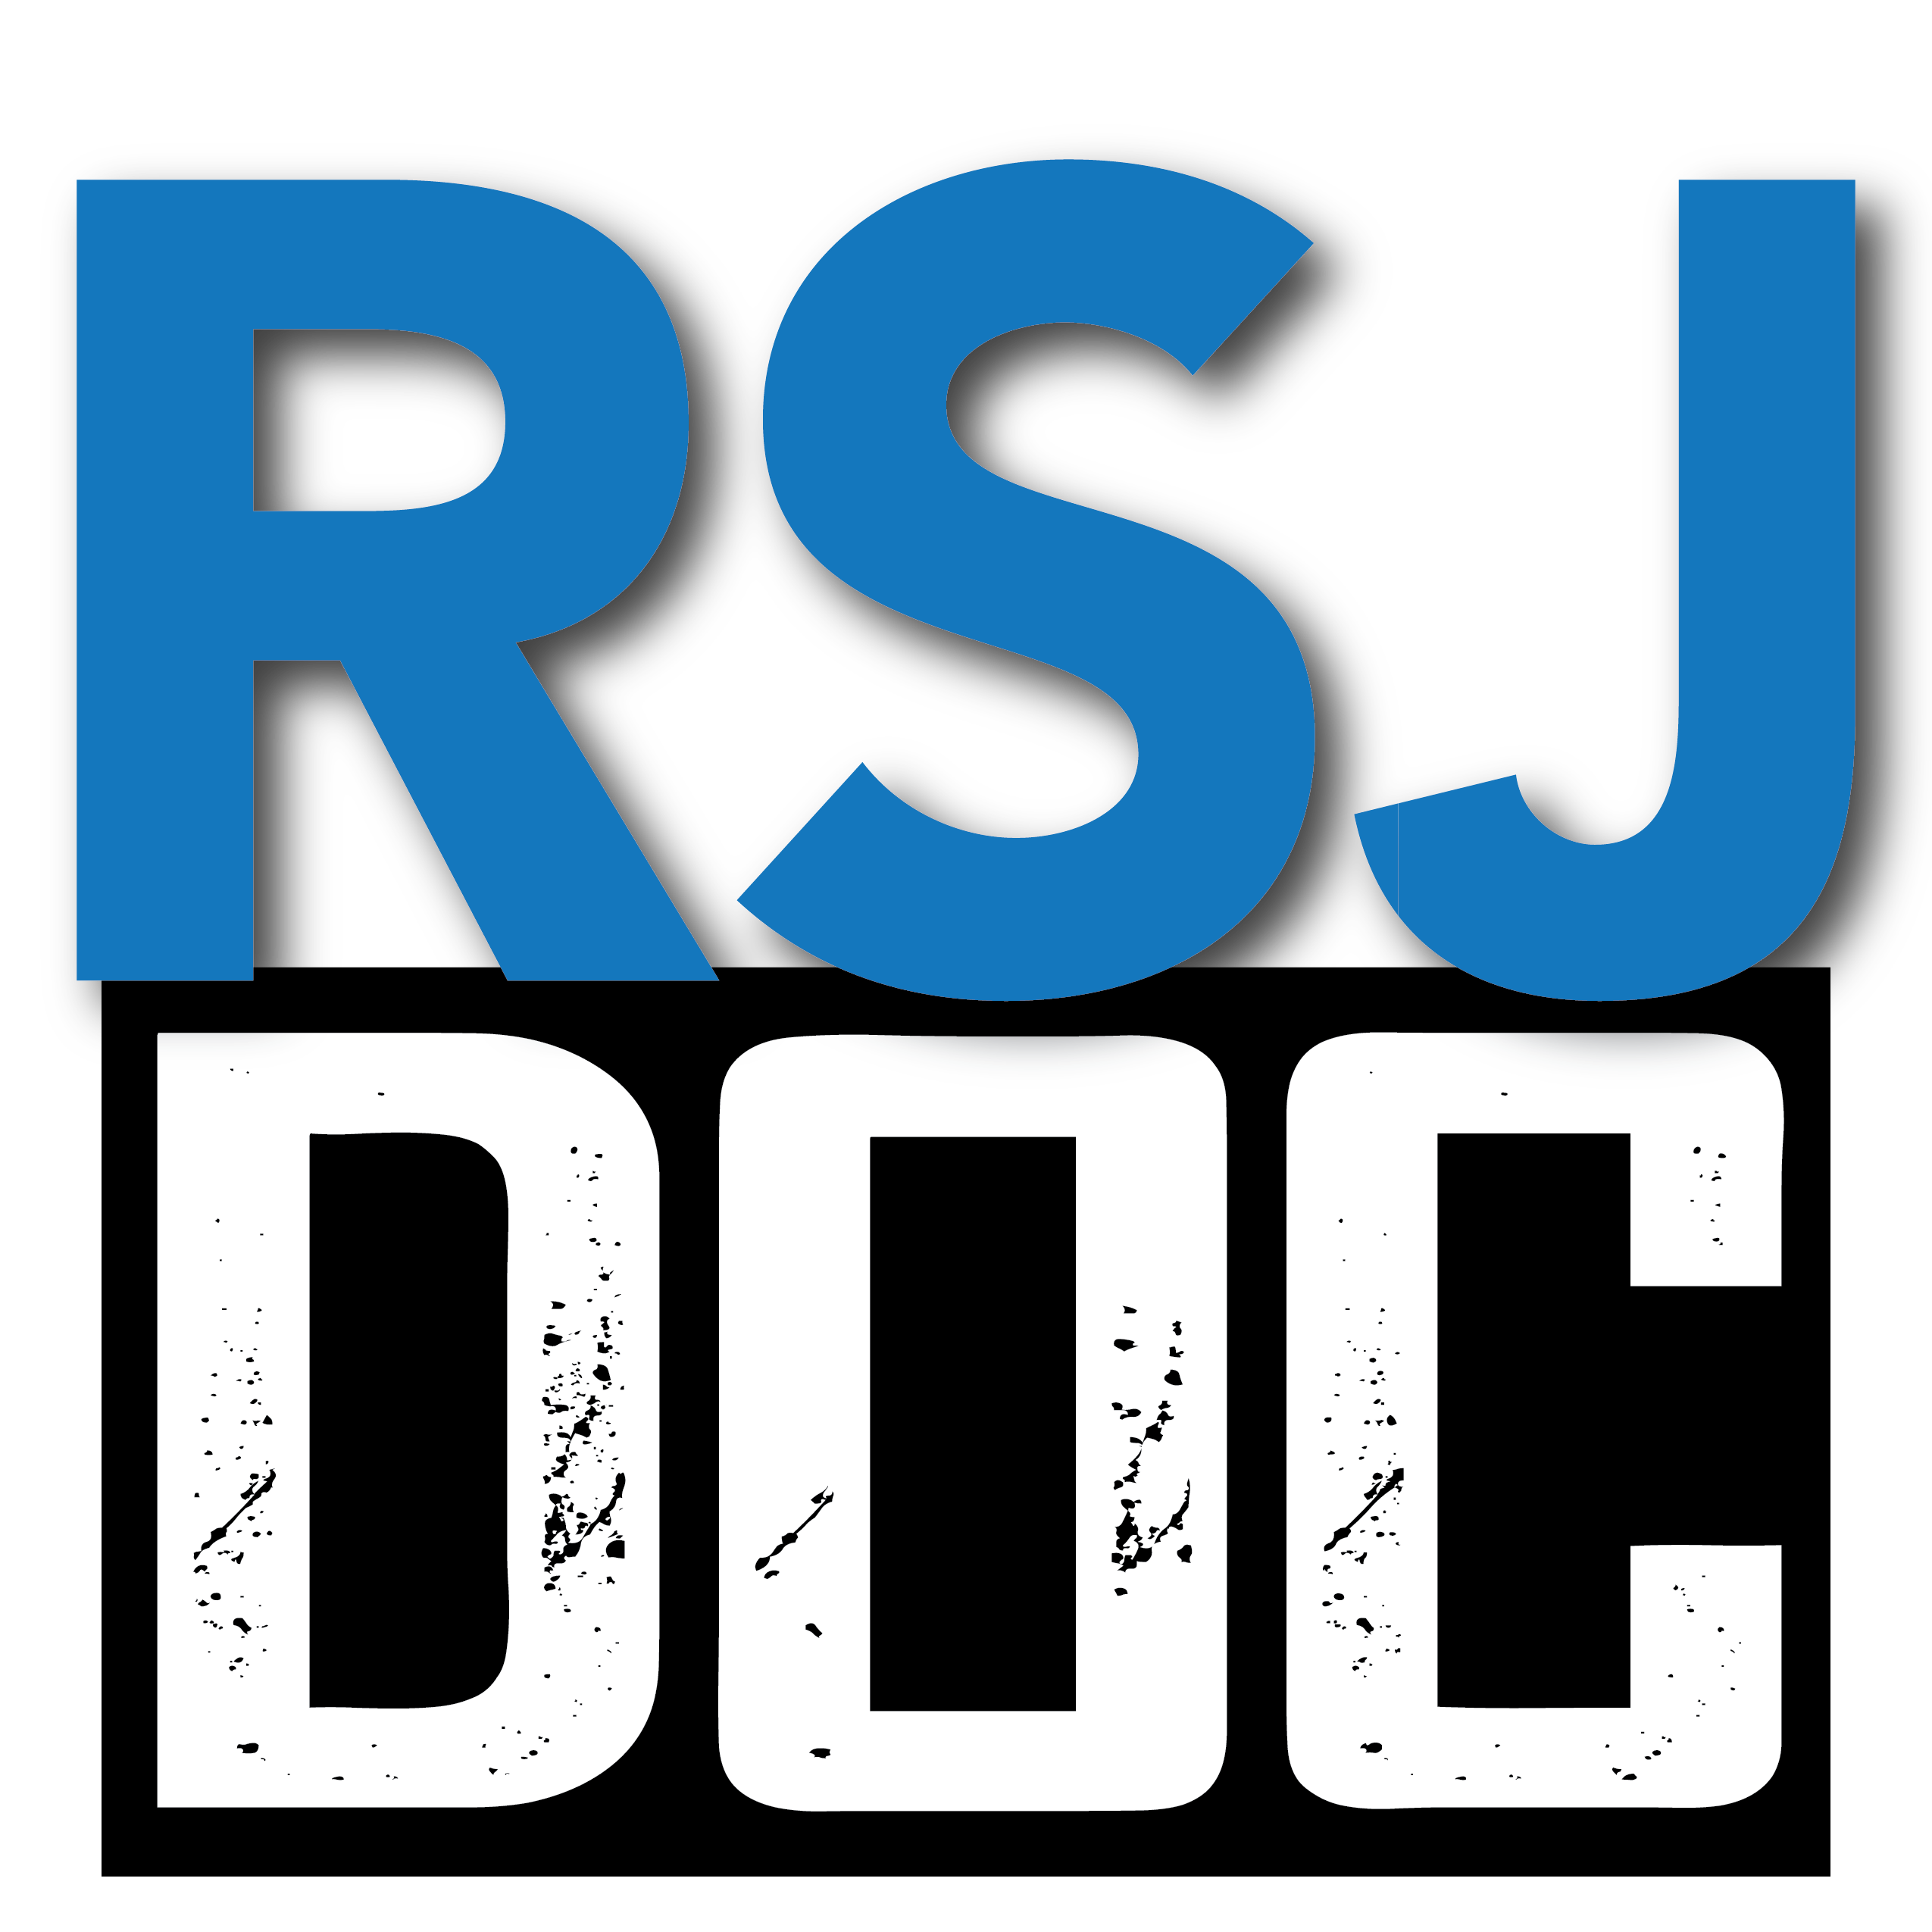 'RSJ' is written in blue font, with 'DOC' in white font, in front of a black outline.